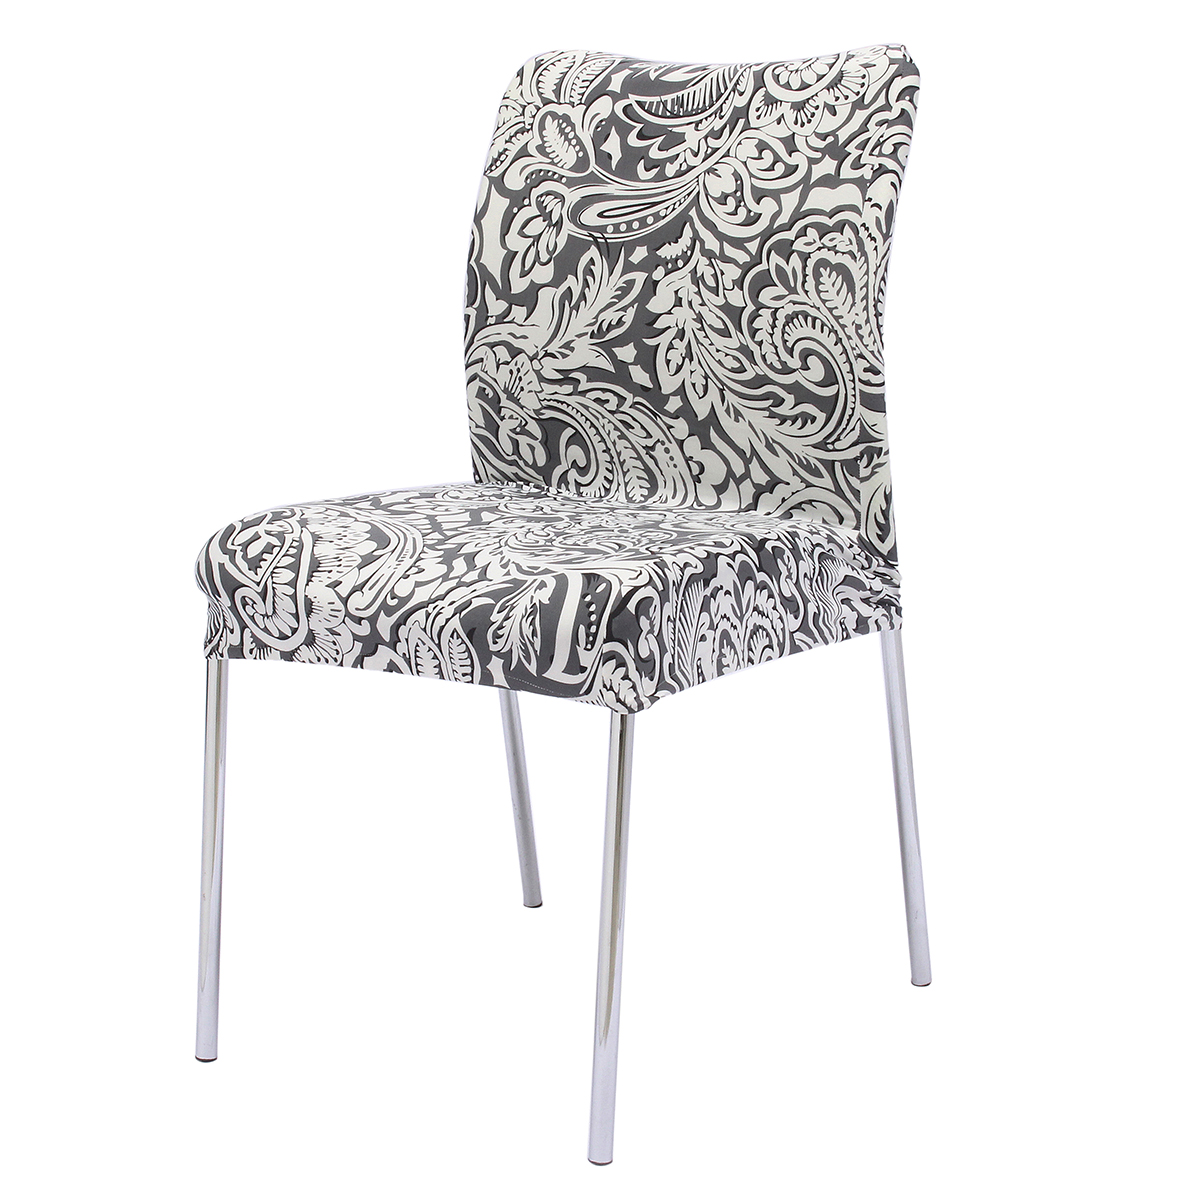 4 Style Stretch Soft Stool Seat Chair Cover Removable Room